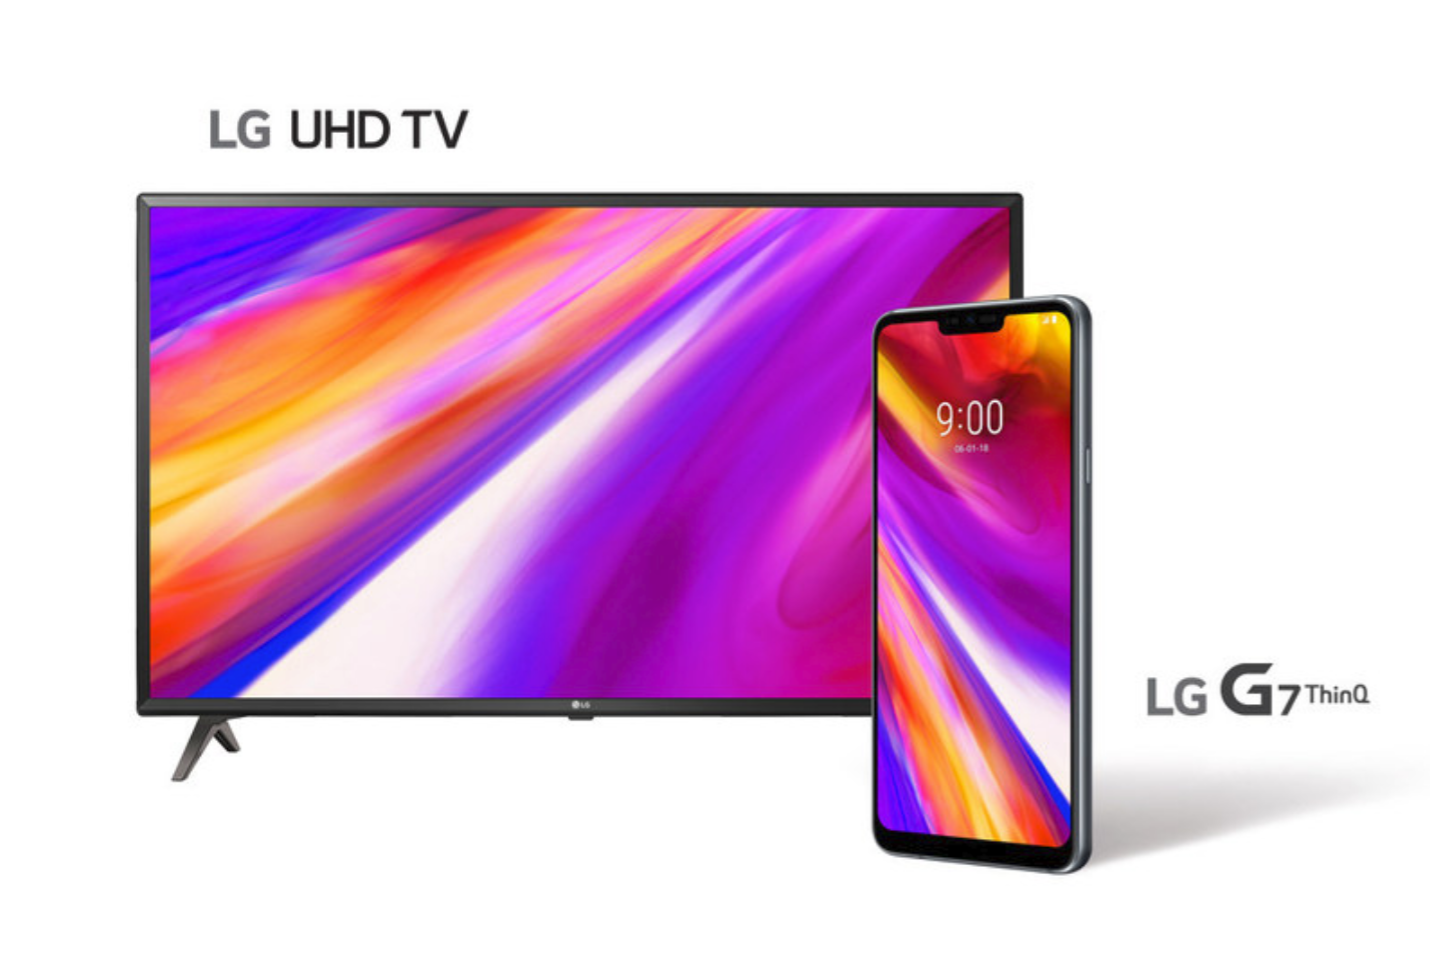 Deal Alert] Canadians can get a free 4K TV with LG G7 ThinQ pre-order